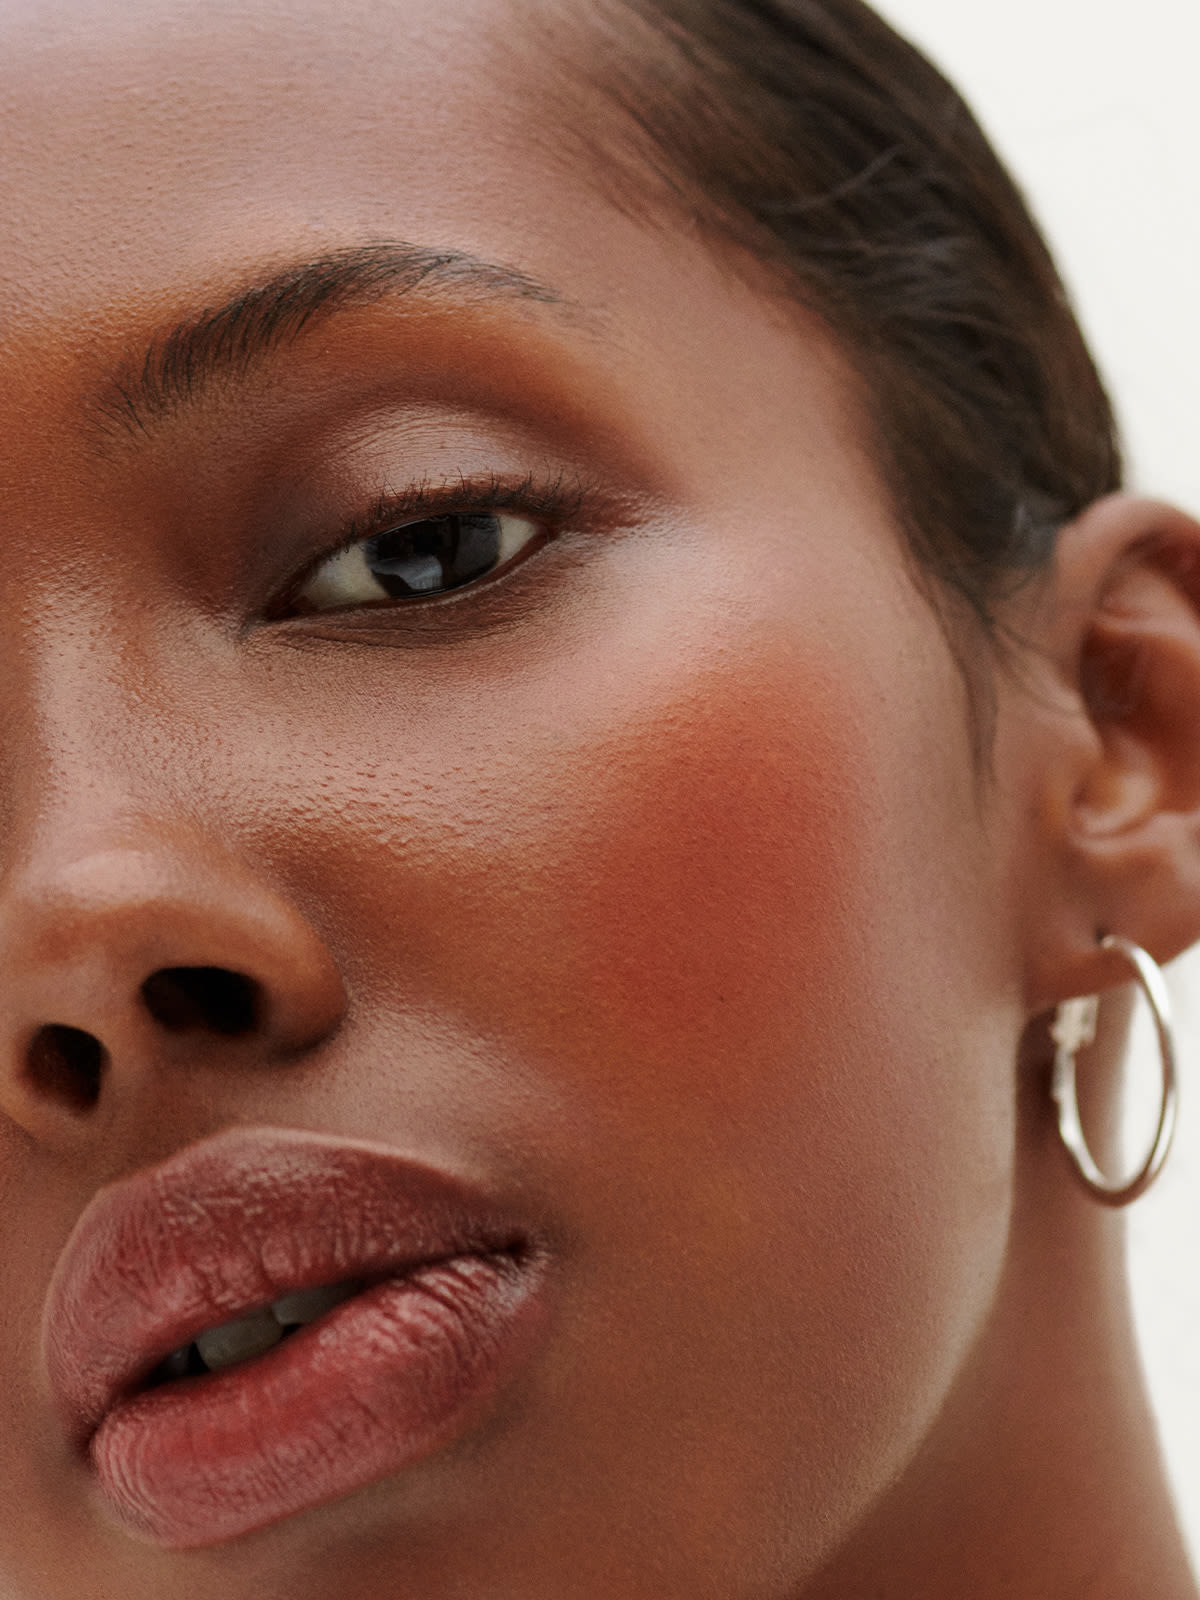 Another model with a darker skin tone with the blush on